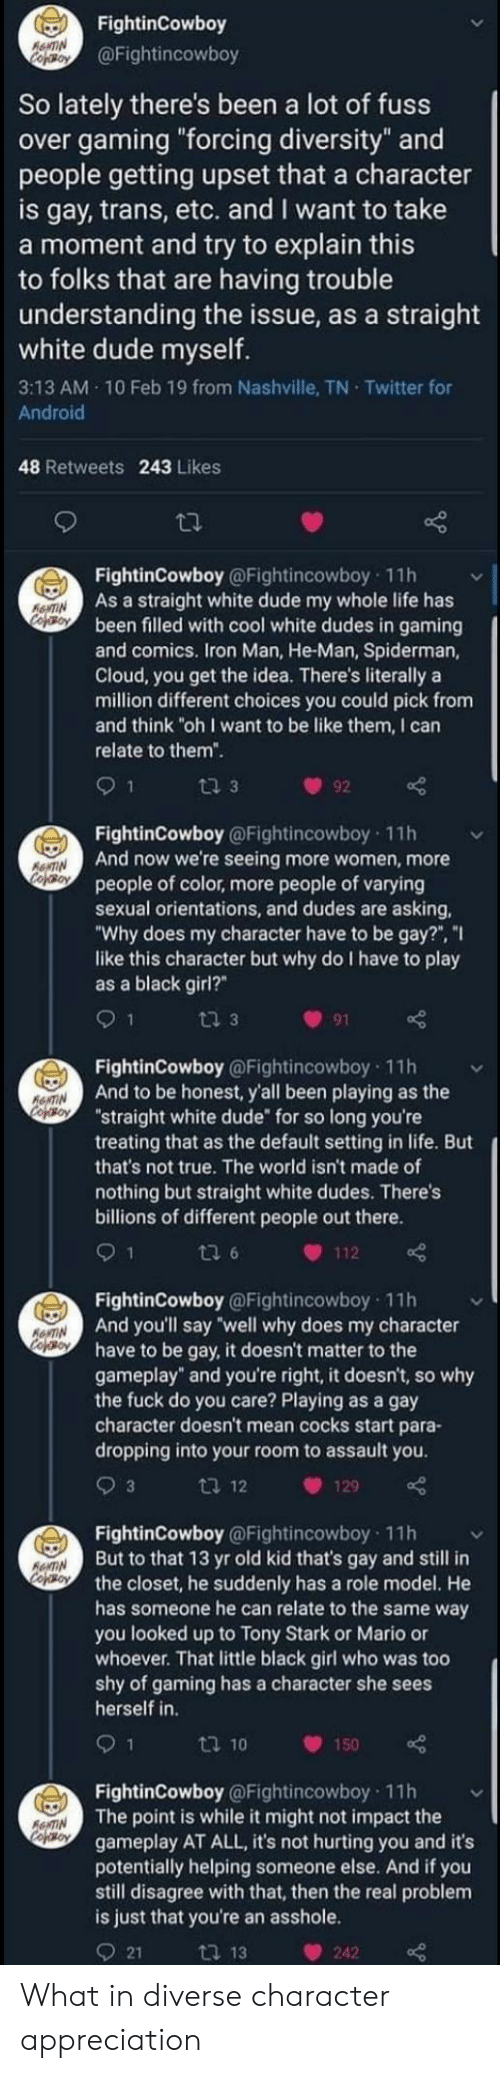 """10 Feb: FightinCowboy  R&NTIN  copBoy  @Fightincowboy  So lately there's been a lot of fuss  over gaming """"forcing diversity"""" and  people getting upset that a character  is gay, trans, etc. and I want to take  a moment and try to explain this  to folks that are having trouble  understanding the issue, as a straight  white dude myself.  3:13 AM 10 Feb 19 from Nashville, TN Twitter for  Android  48 Retweets 243 Likes  FightinCowboy @Fightincowboy 11h  As a straight white dude my whole life has  been filled with cool white dudes in gaming  and comics. Iron Man, He-Man, Spiderman,  Cloud, you get the idea. There's literally a  million different choices you could pick from  and think """"oh I want to be like them, I can  relate to them""""  RONTIN  CofOroN  9 1  t 3  92  FightinCowboy @Fightincowboy 11h  And now we're seeing more women, more  people of color, more people of varying  sexual orientations, and dudes are asking,  """"Why does my character have to be gay?"""", """"I  like this character but why do I have to play  as a black girl?""""  AONTIN  CofeBON  ti 3  91  FightinCowboy @Fightincowboy 11h  And to be honest, y'all been playing as the  """"straight white dude"""" for so long you're  treating that as the default setting in life. But  that's not true. The world isn't made of  RENTIN  CopOroy  nothing but straight white dudes. There's  billions of different people out there.  ti 6  112  FightinCowboy@Fightincowboy 11h  And you'll say """"well why does my character  have to be gay, it doesn't matter to the  gameplay"""" and you're right, it doesn't, so why  the fuck do you care? Playing as a gay  character doesn't mean cocks start para-  RENTIN  cofoy  dropping into your room to assault you.  9 3  ti 12  129  FightinCowboy @Fightincowboy 11h  But to that 13 yr old kid that's gay and still in  the closet, he suddenly has a role model. He  has someone he can relate to the same way  you looked up to Tony Stark or Mario or  whoever. That little black girl who was too  shy of gaming has a charac"""